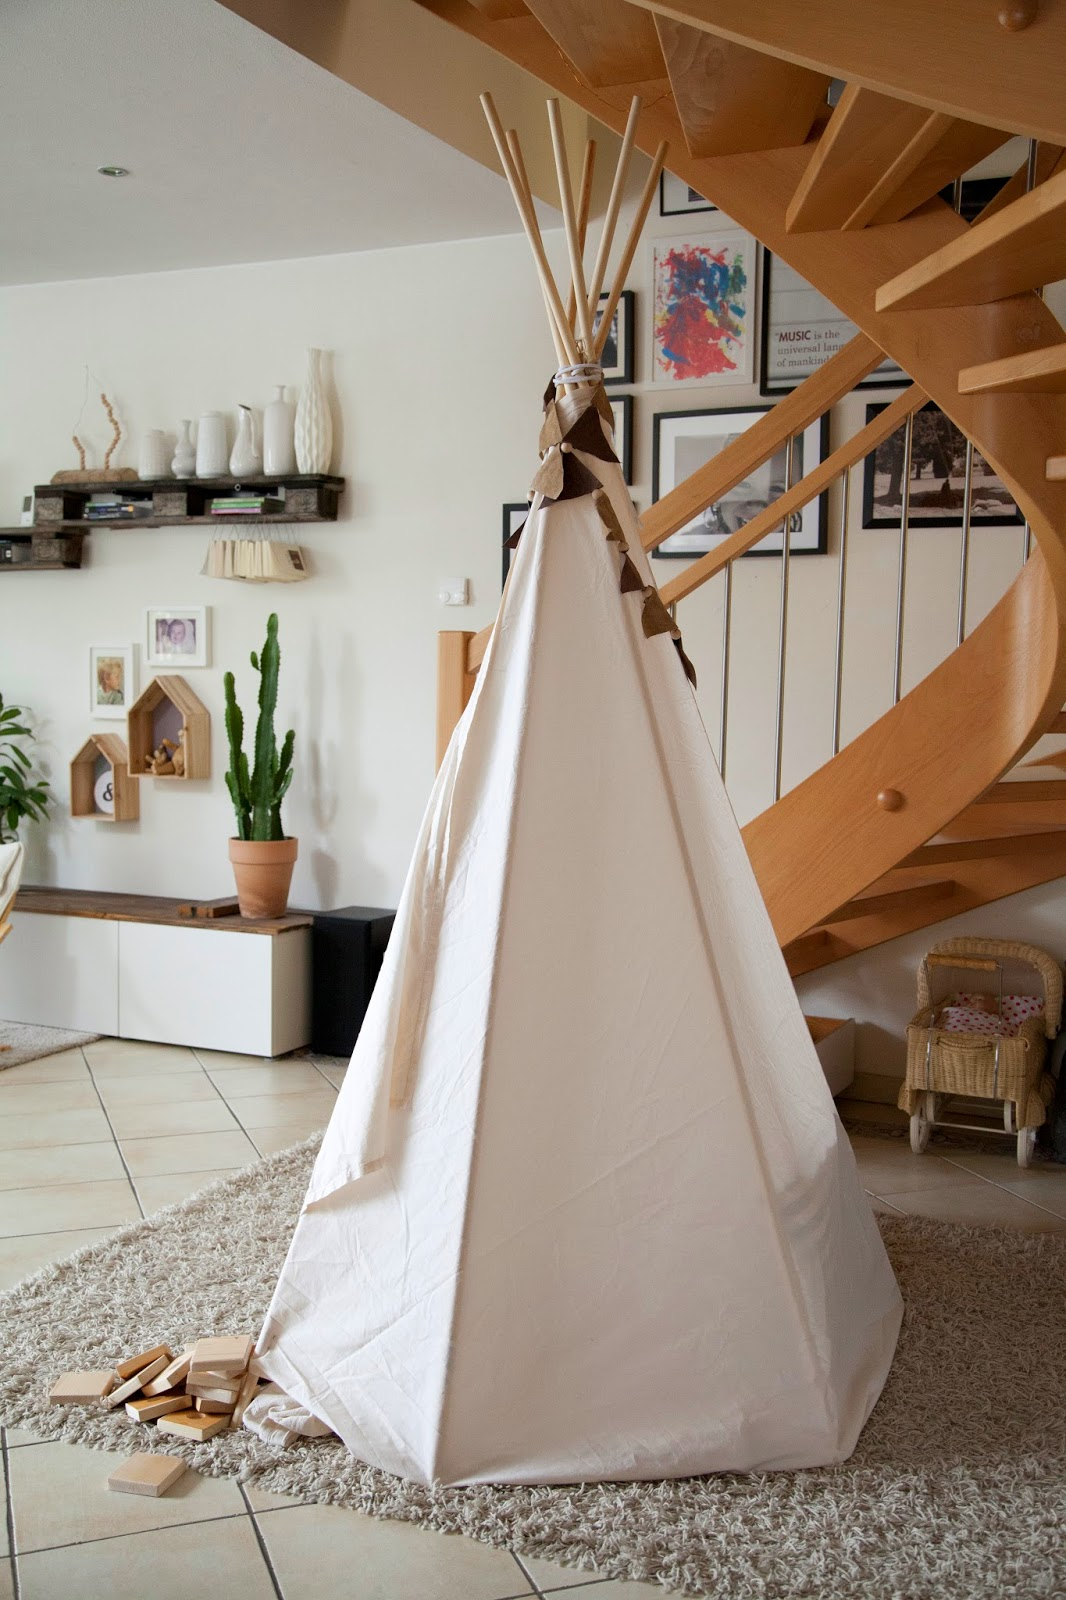 selbstgemachte tipi ohne n hen wohnprojekt wohnblog f r interior diy und lifestyle. Black Bedroom Furniture Sets. Home Design Ideas